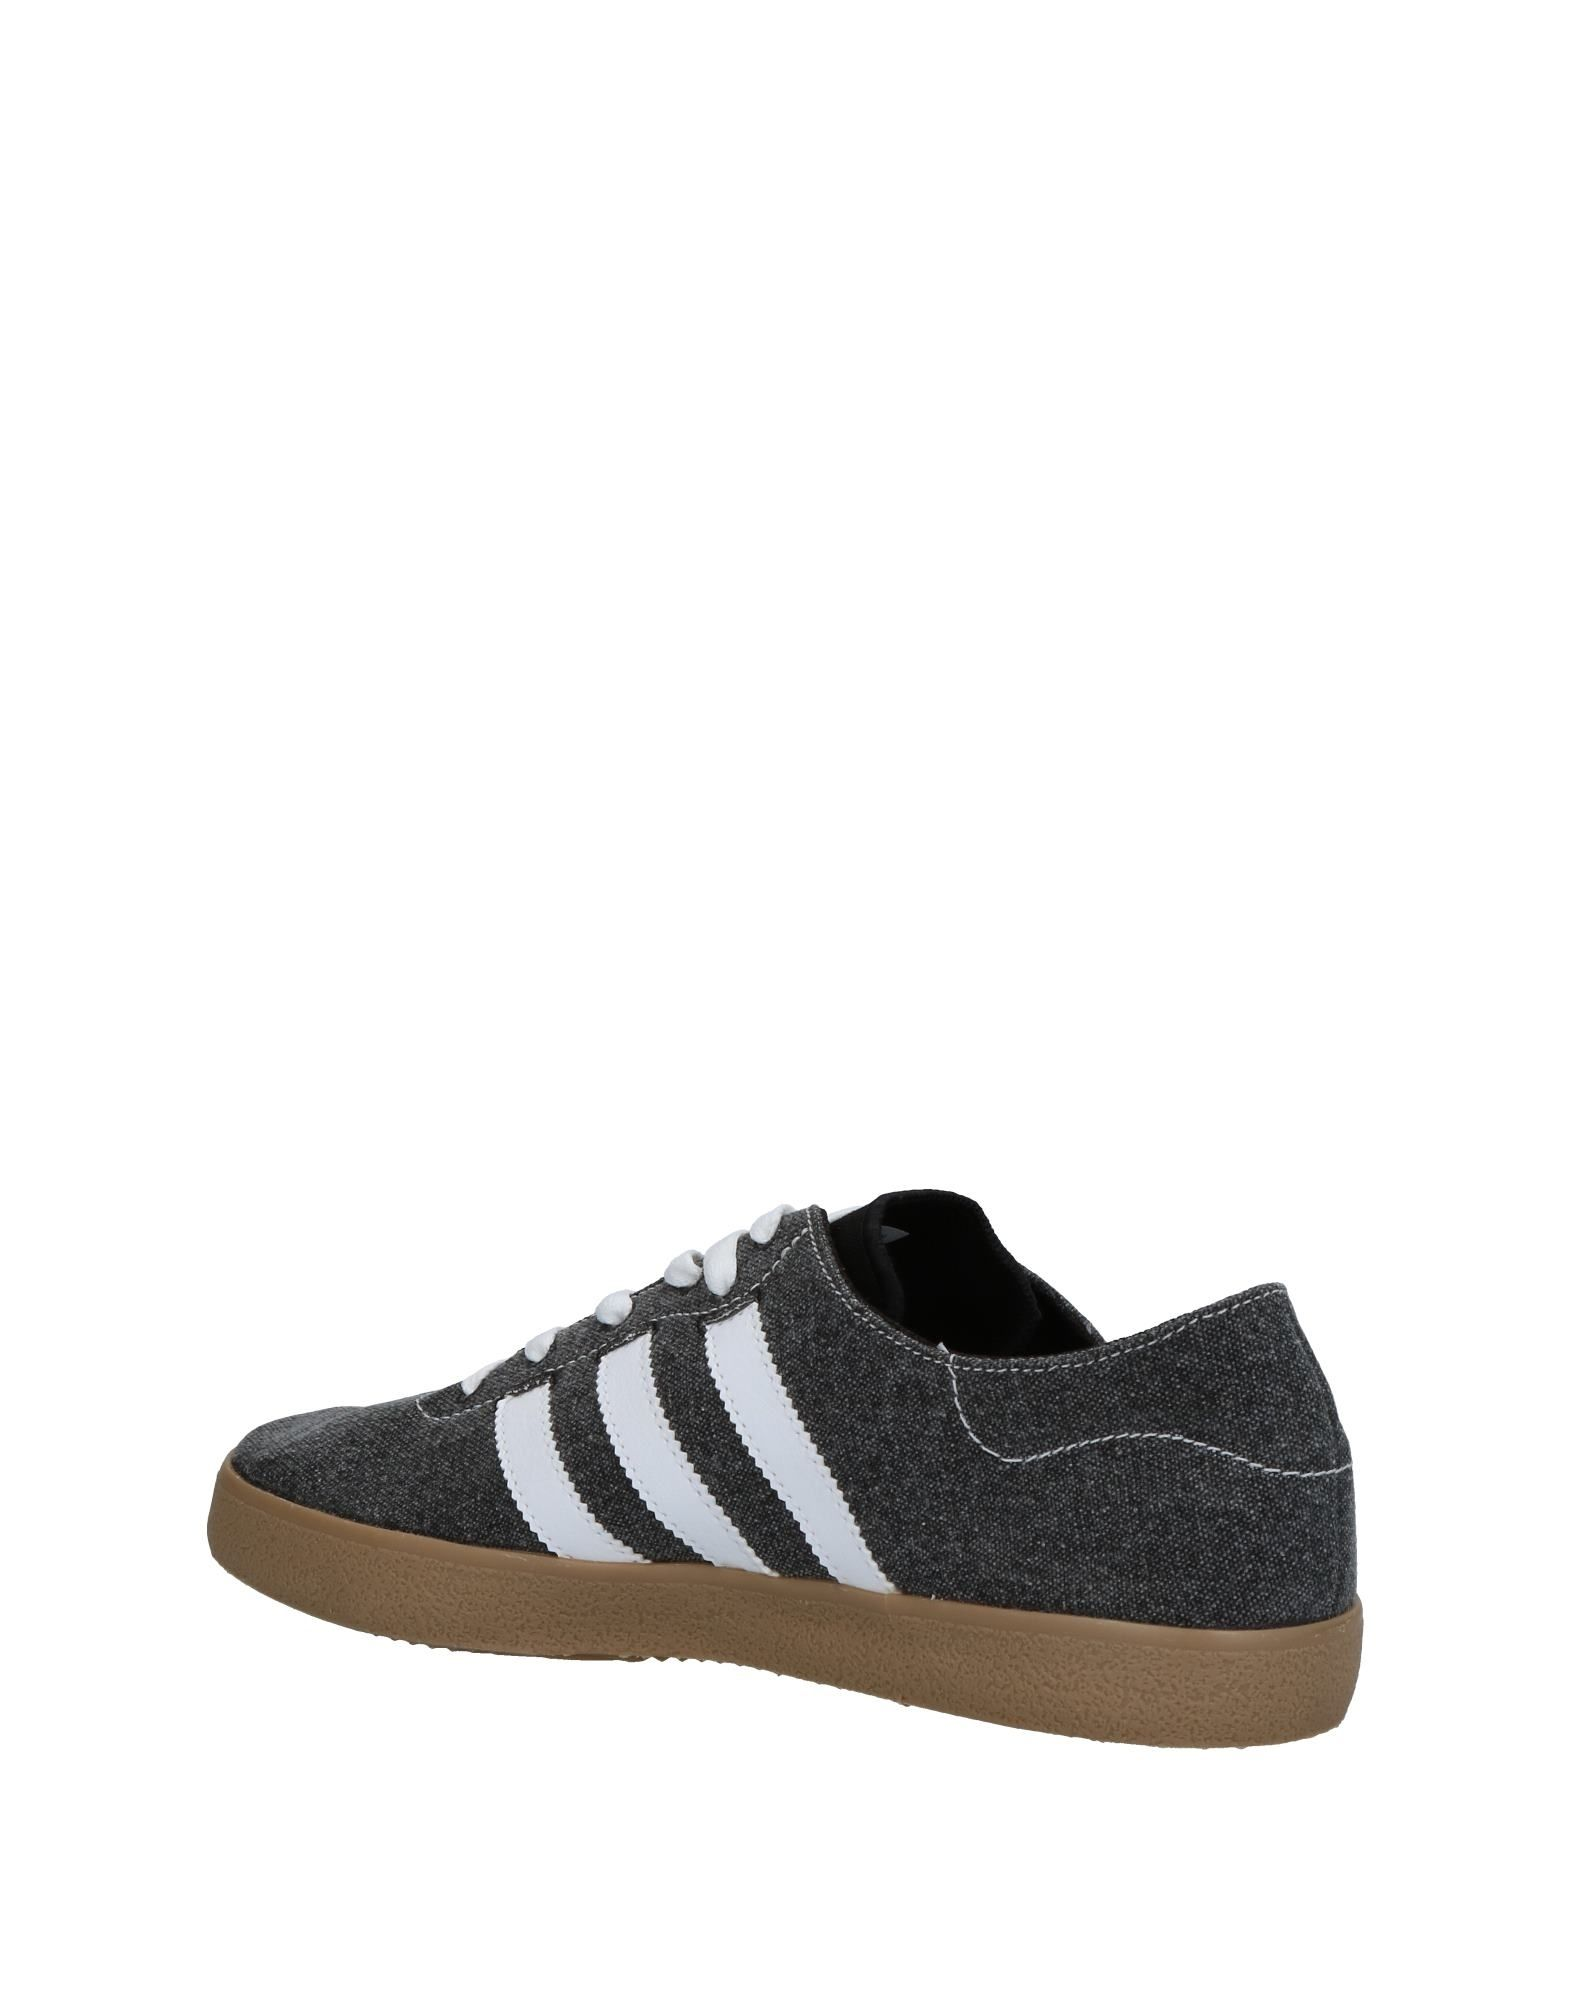 Adidas Originals Neue Sneakers Herren  11364373OR Neue Originals Schuhe 99e58e